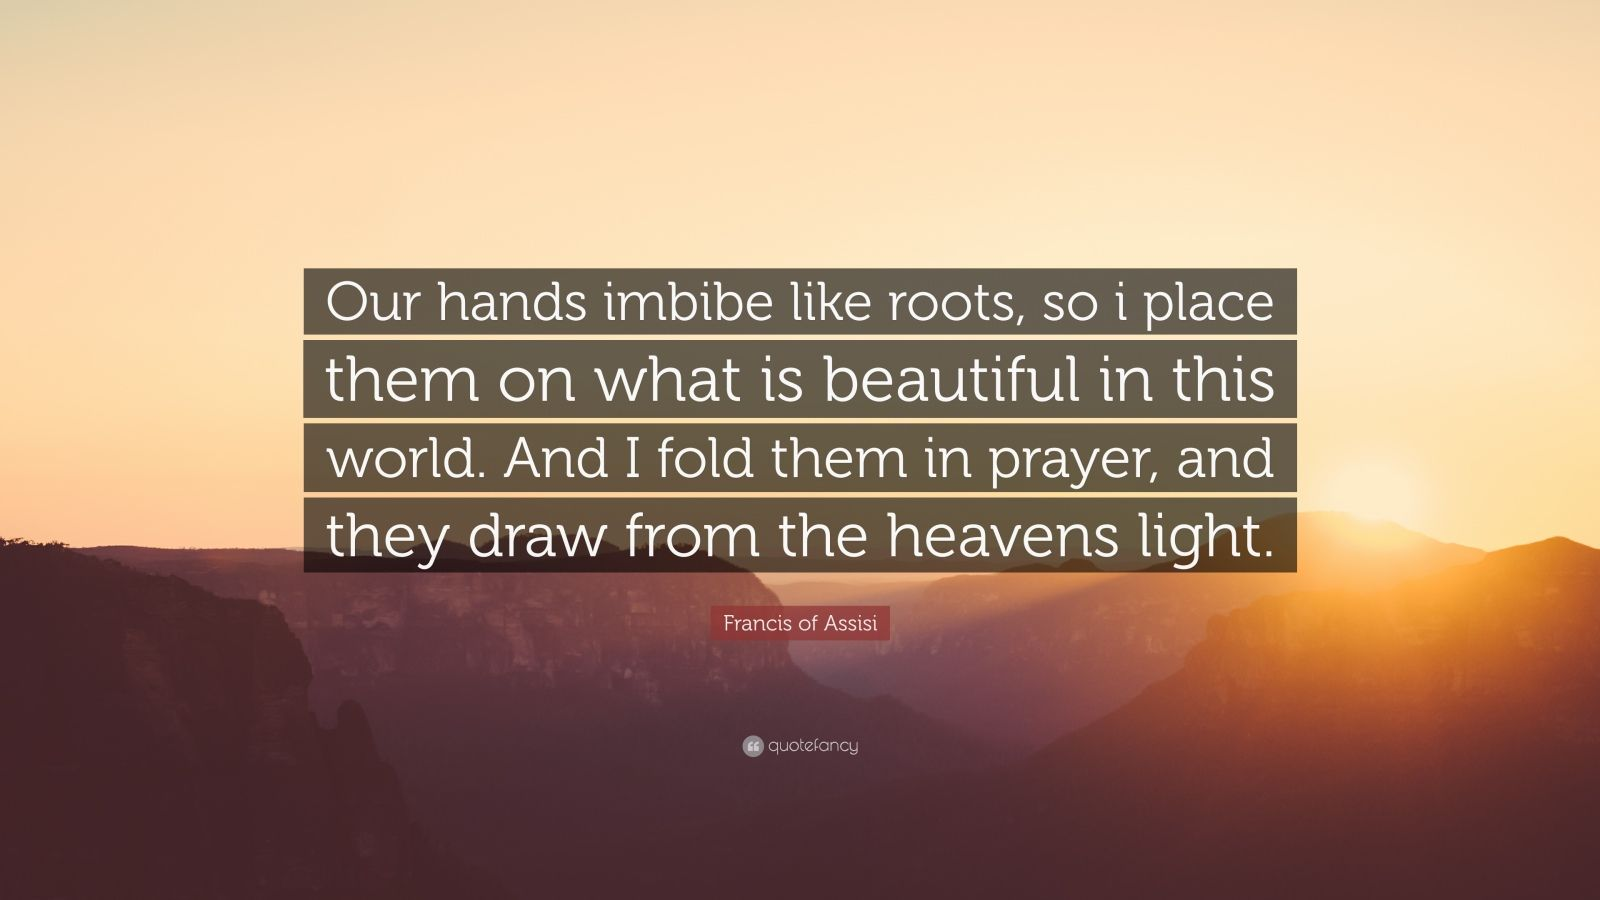 """Francis of Assisi Quote: """"Our hands imbibe like roots, so i place them on what is beautiful in this world. And I fold them in prayer, and they draw from the heavens light."""""""